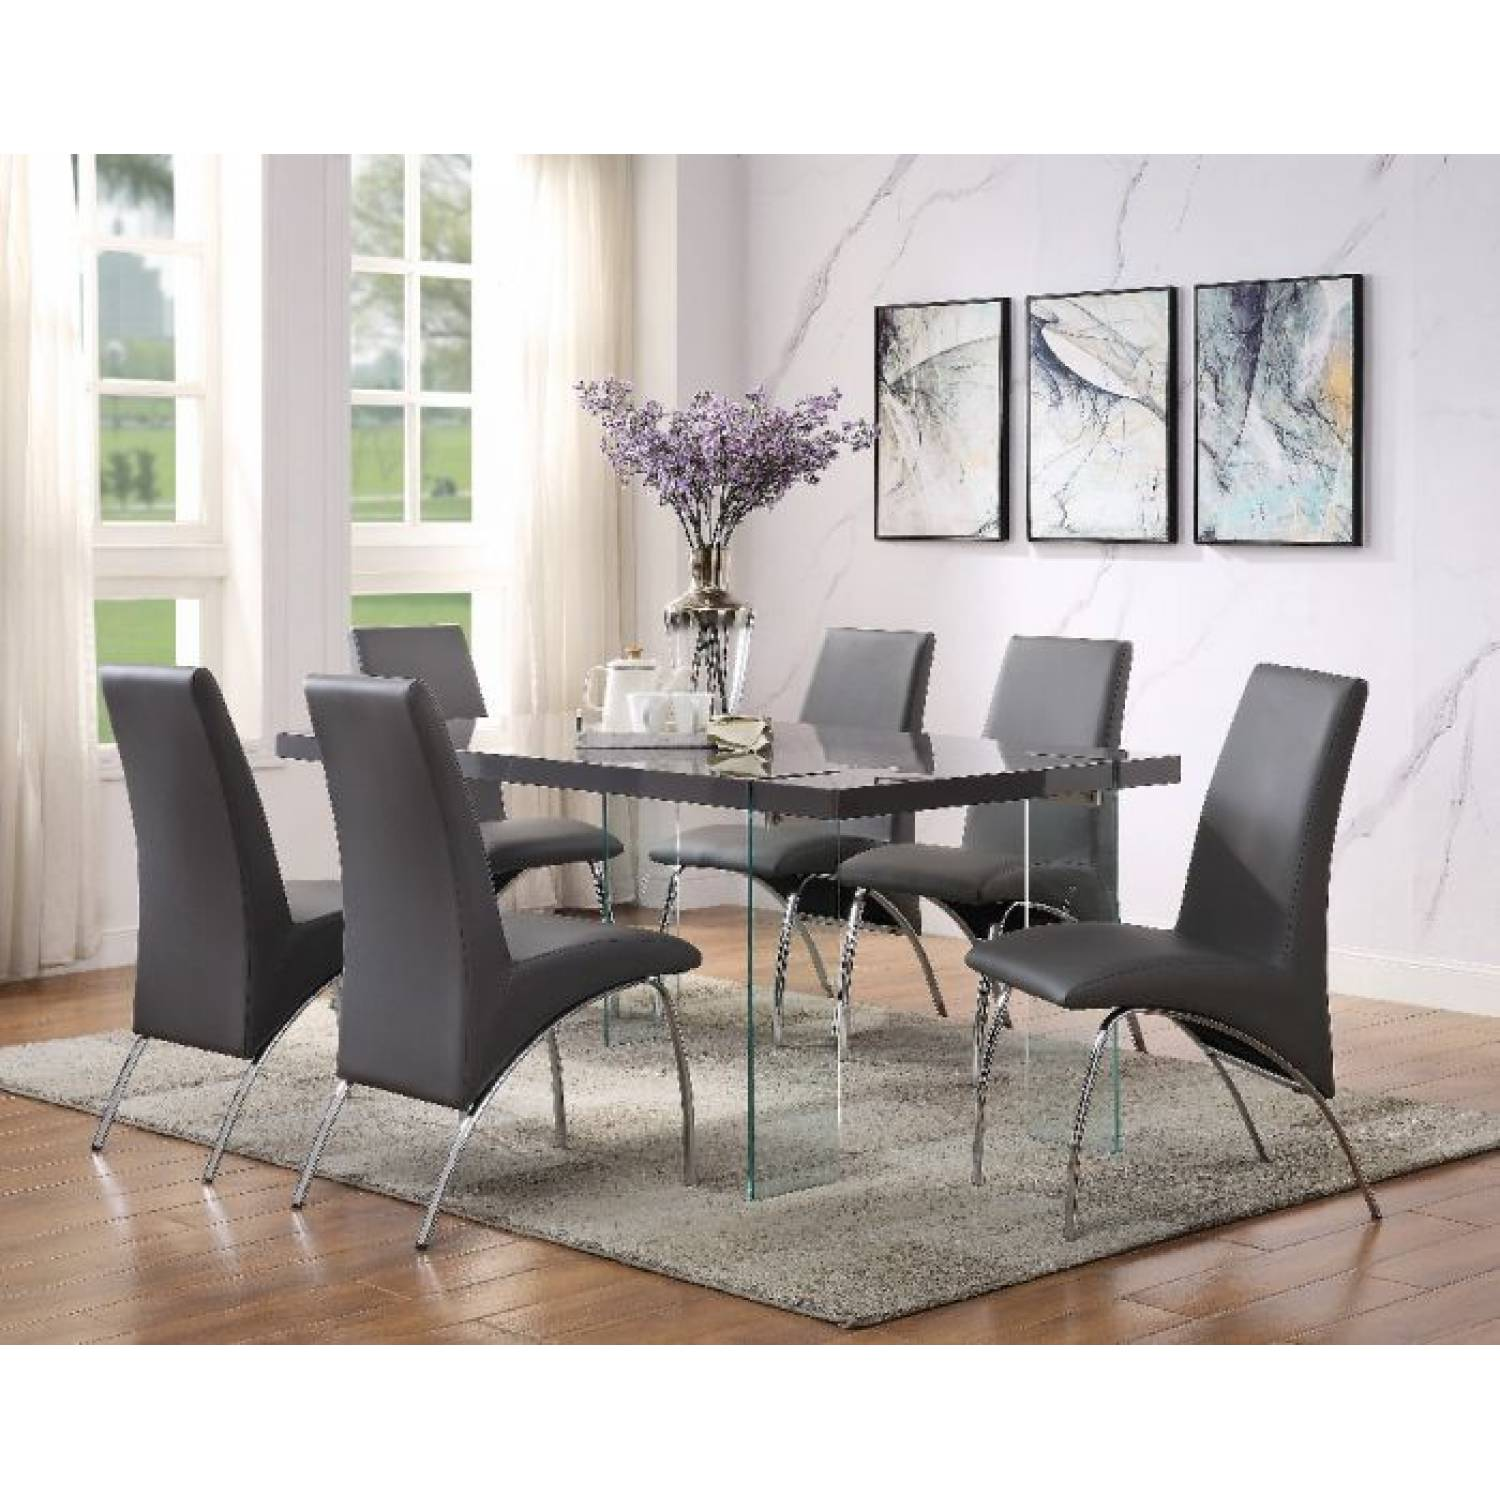 Noland Dining Table In Gray High Gloss Clear Glass Acme Furniture 72190